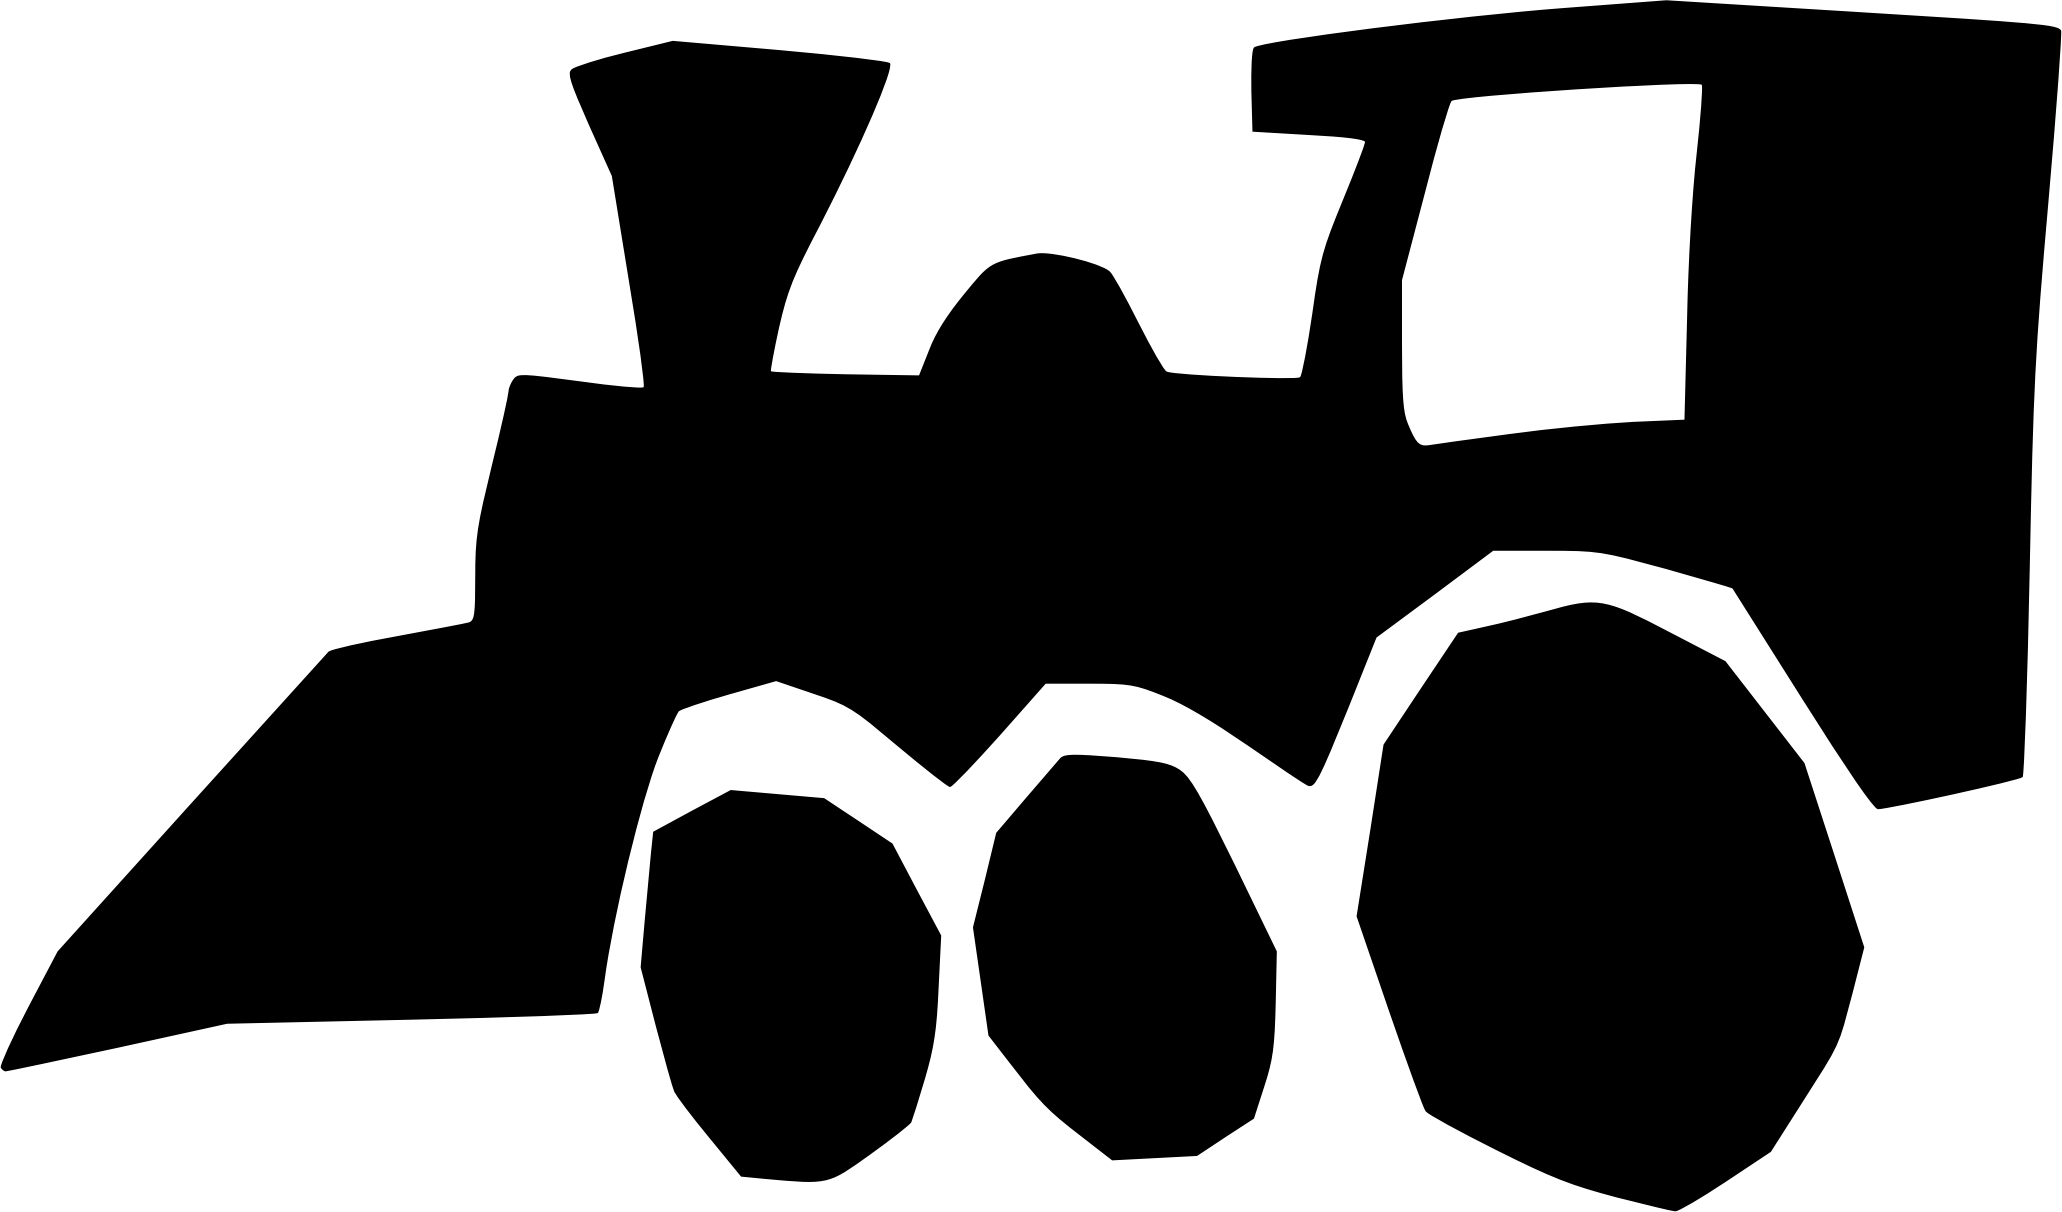 Train by NicholasJudy567